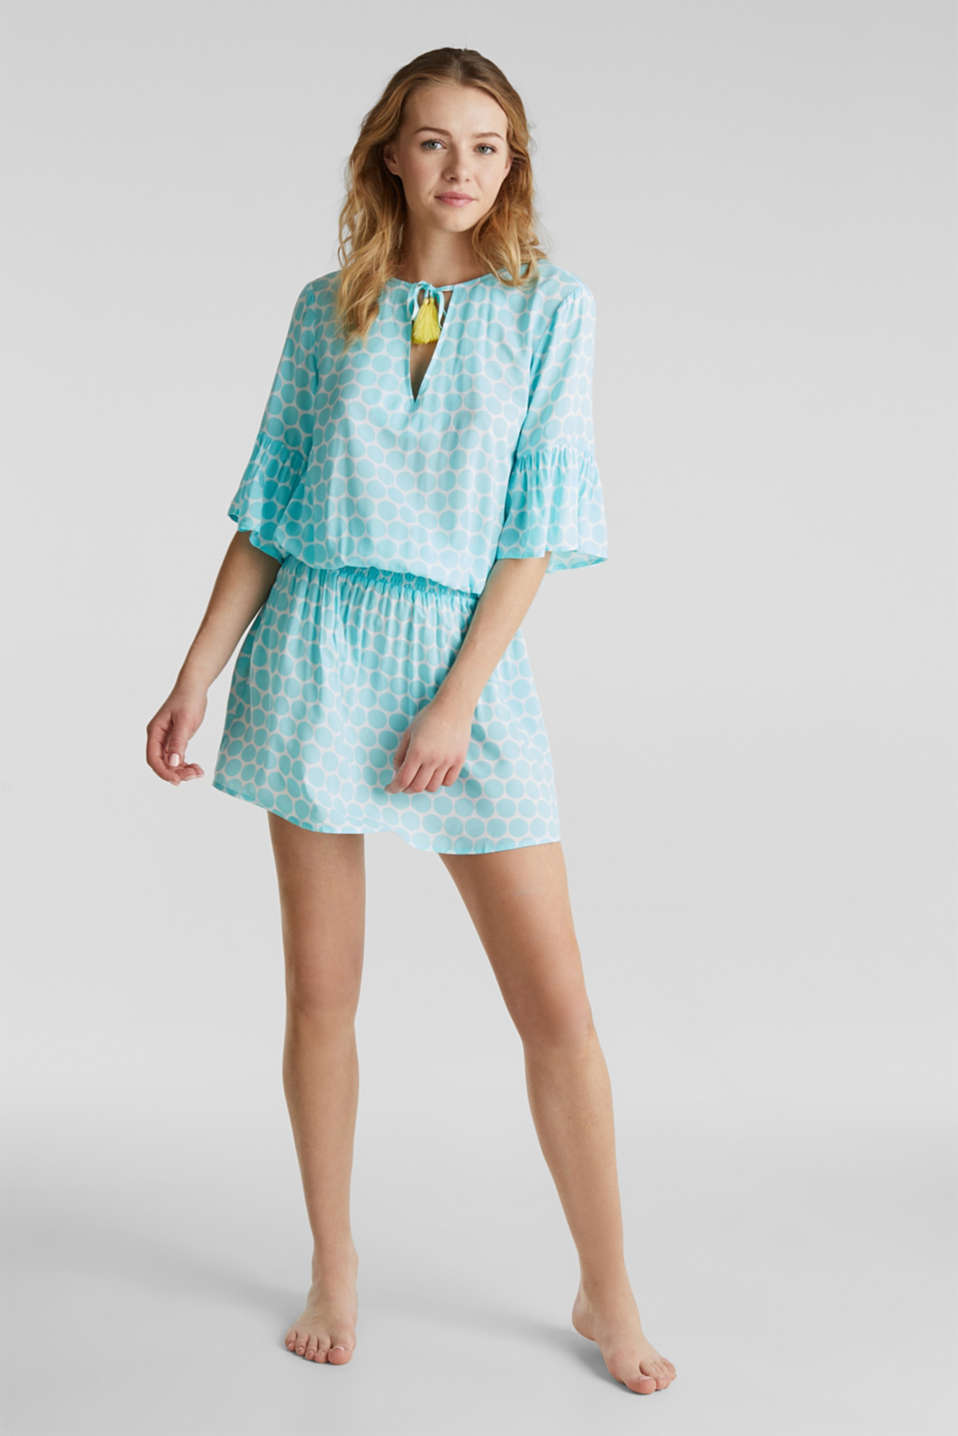 Tunic dress with a polka dot print, LIGHT AQUA GREEN, detail image number 2